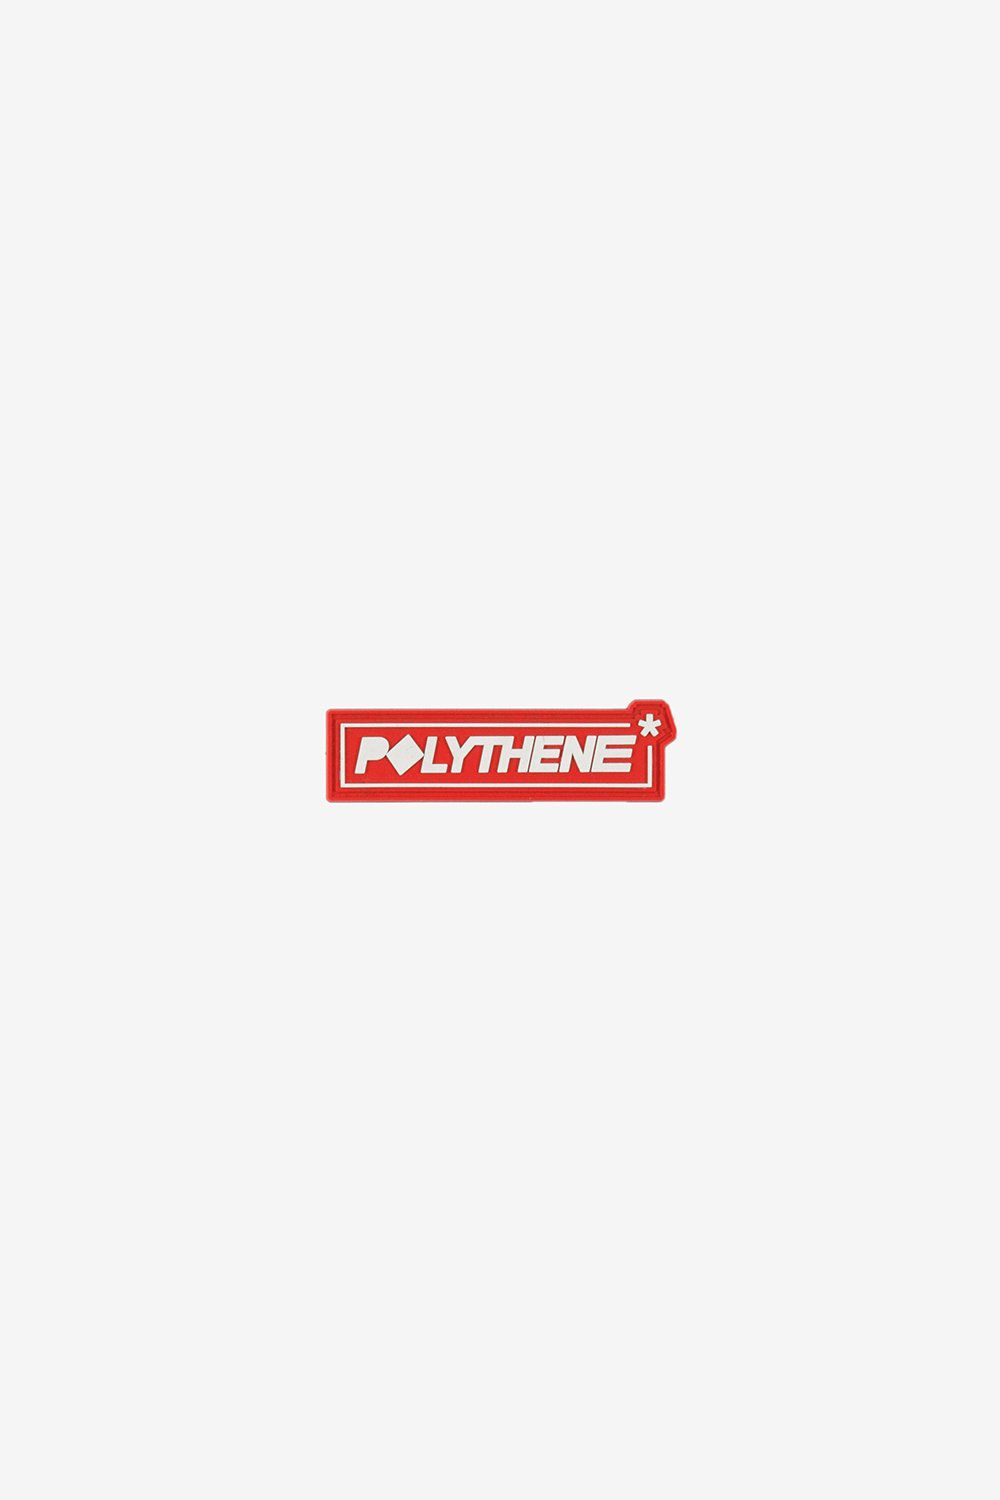 Polythene Optics OS Rubber Badge White/Red